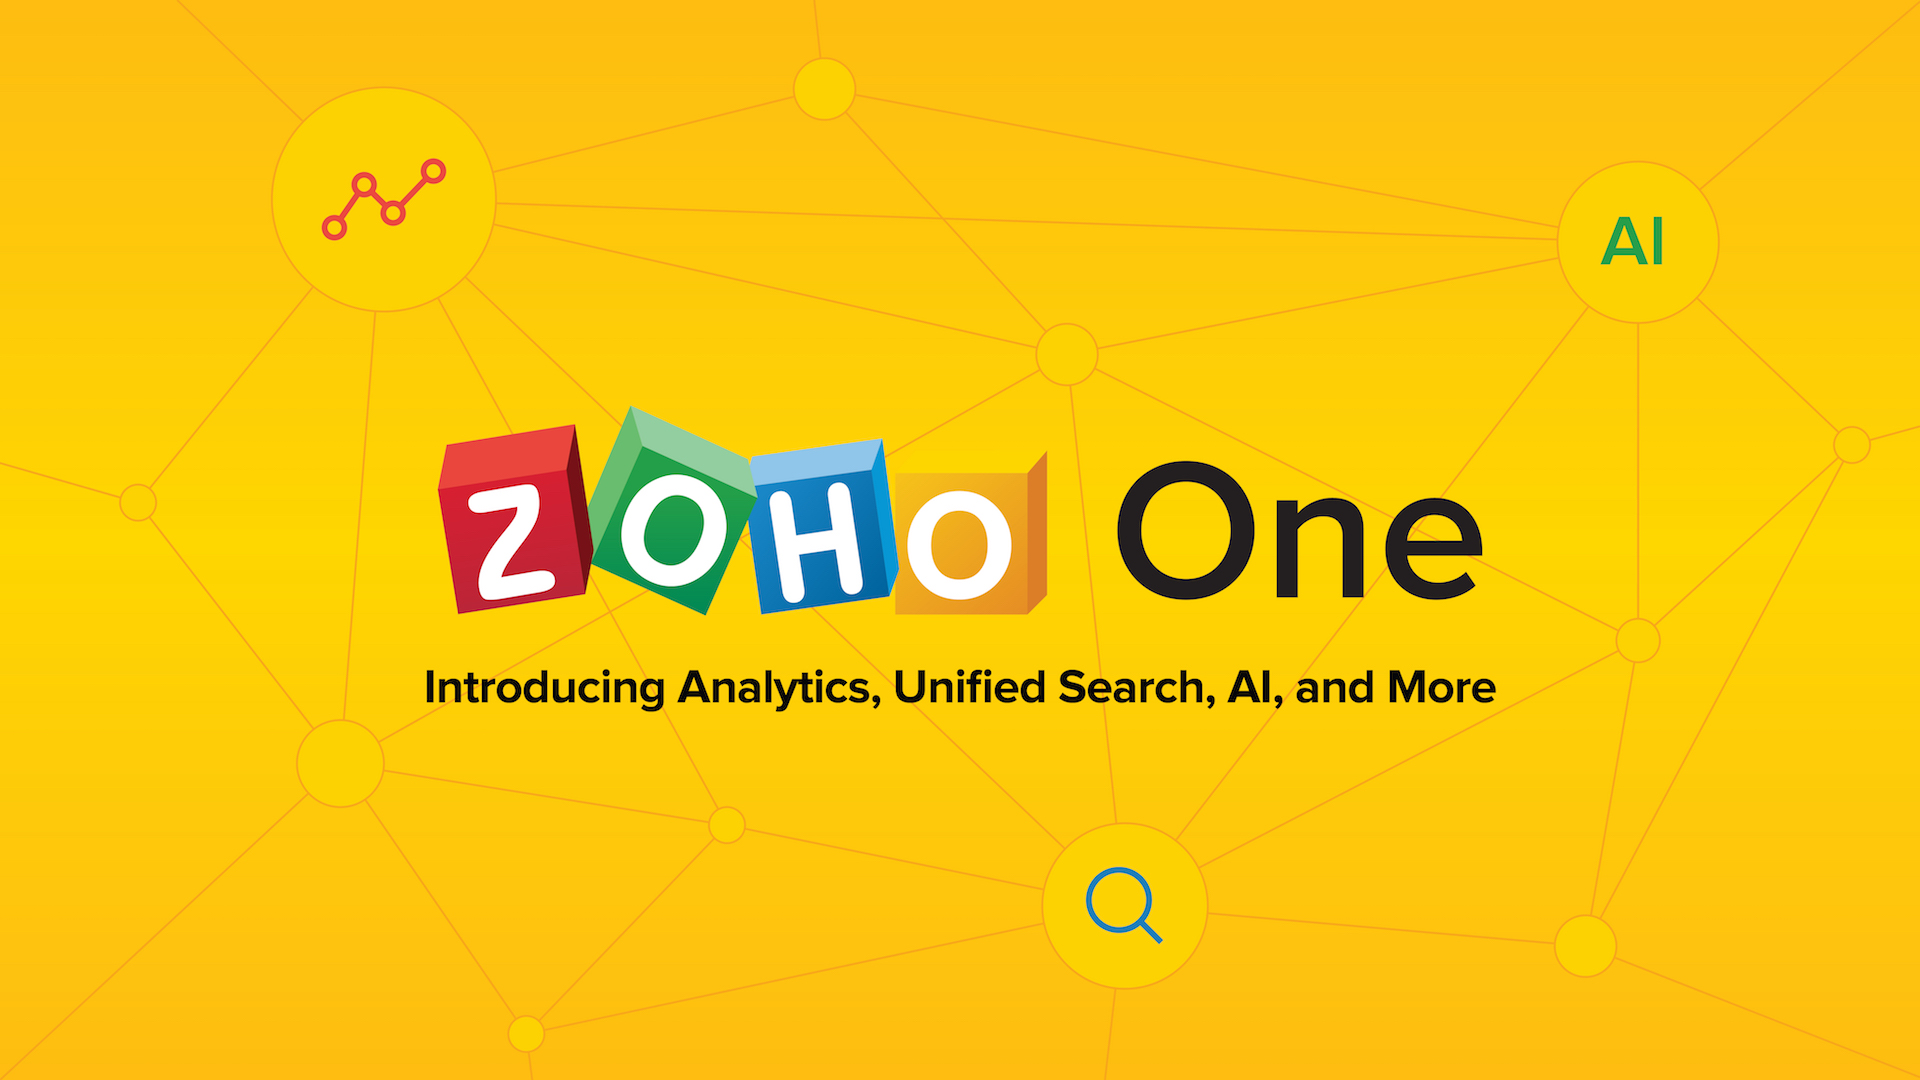 One Year of Zoho One: Introducing Analytics, Unified Search, AI, and More